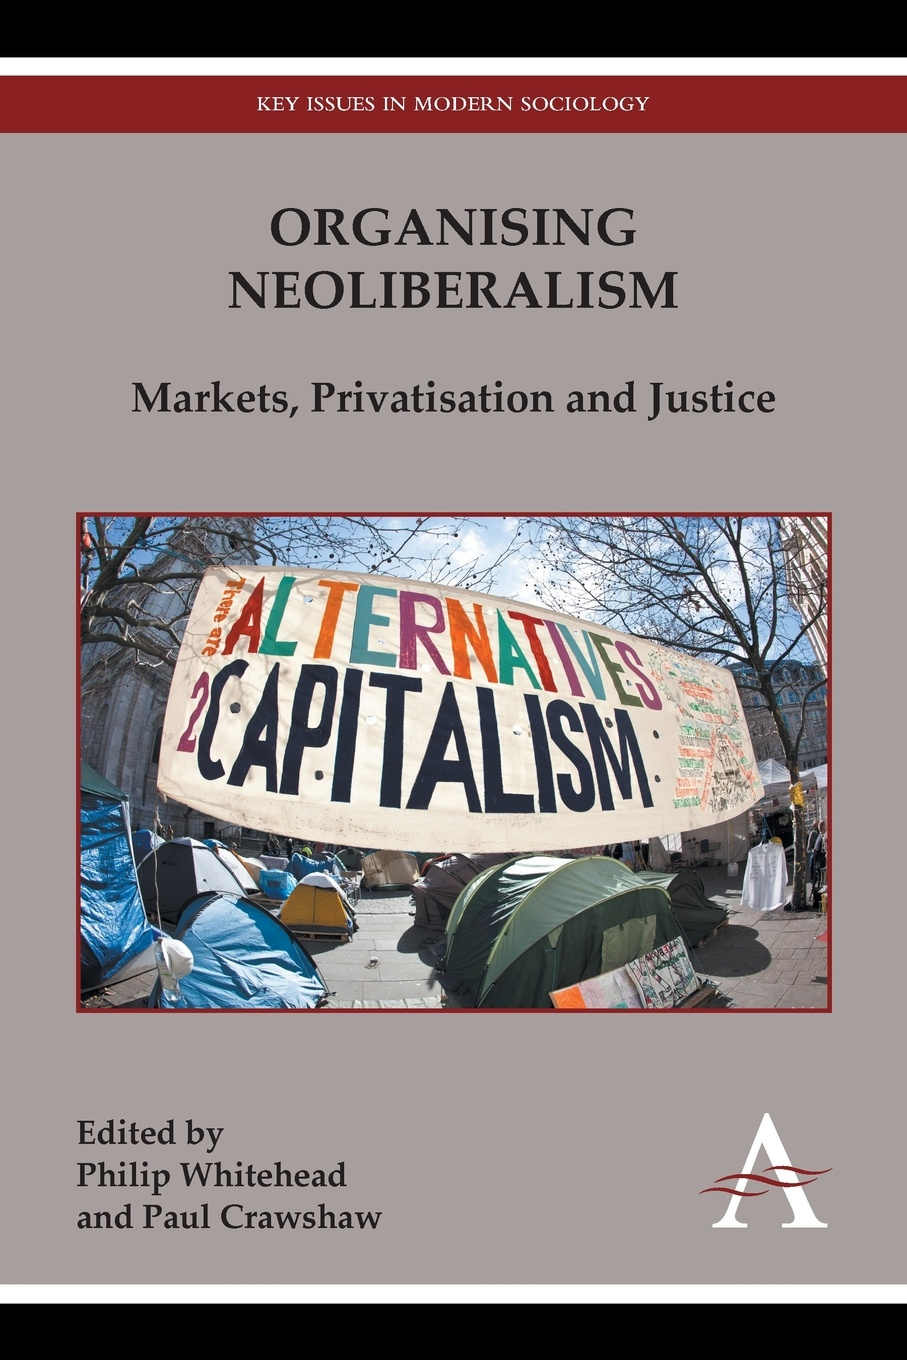 Organising Neoliberalism. Markets, Privatisation and Justice robert perryman can we reconcile neoliberalism and marine conservation conflict between economic and environmental interests